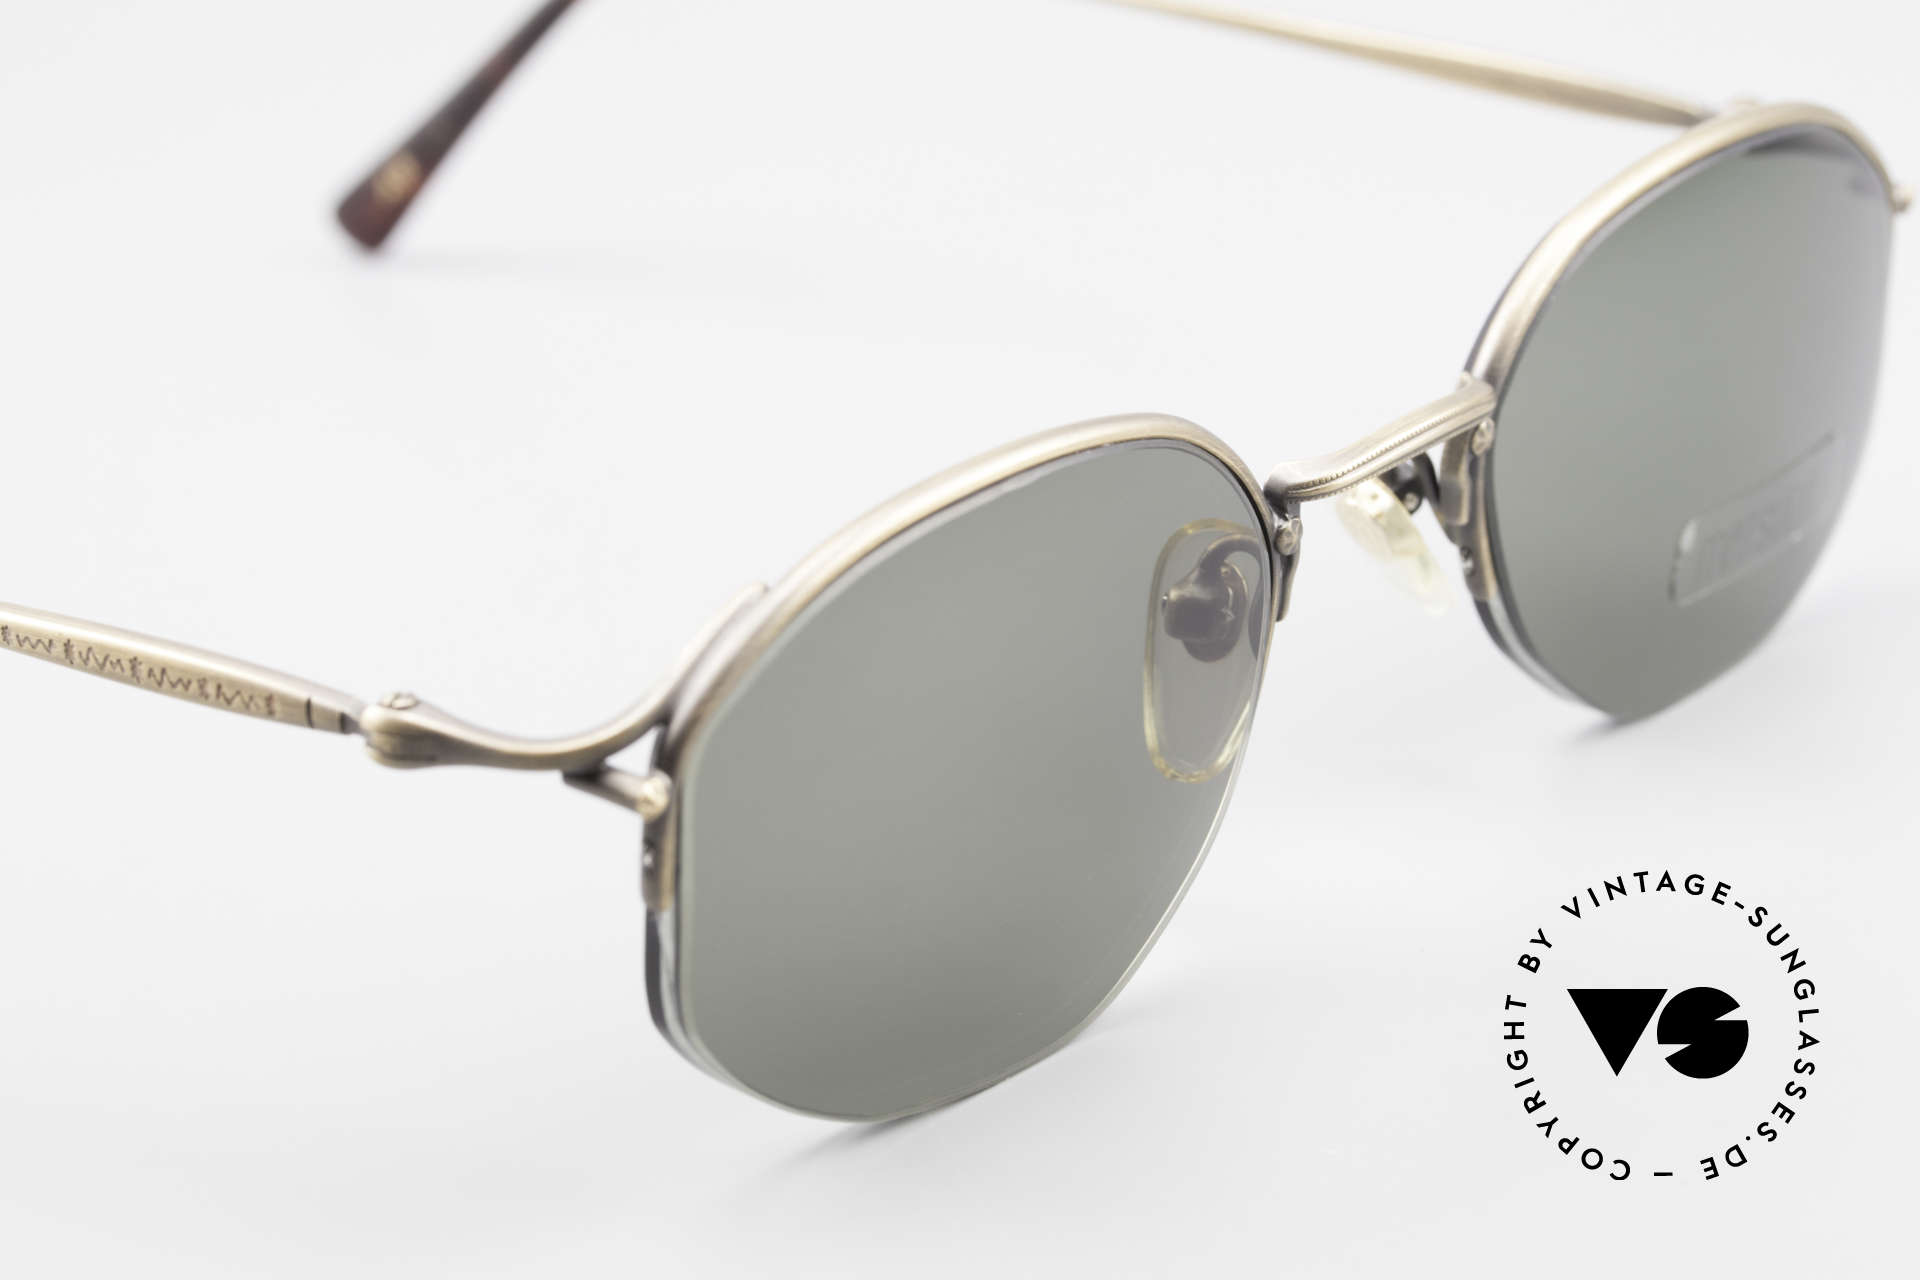 Matsuda 2855 Extraordinary Vintage Frame, lenses (100% UV) can be replaced with prescriptions, Made for Men and Women